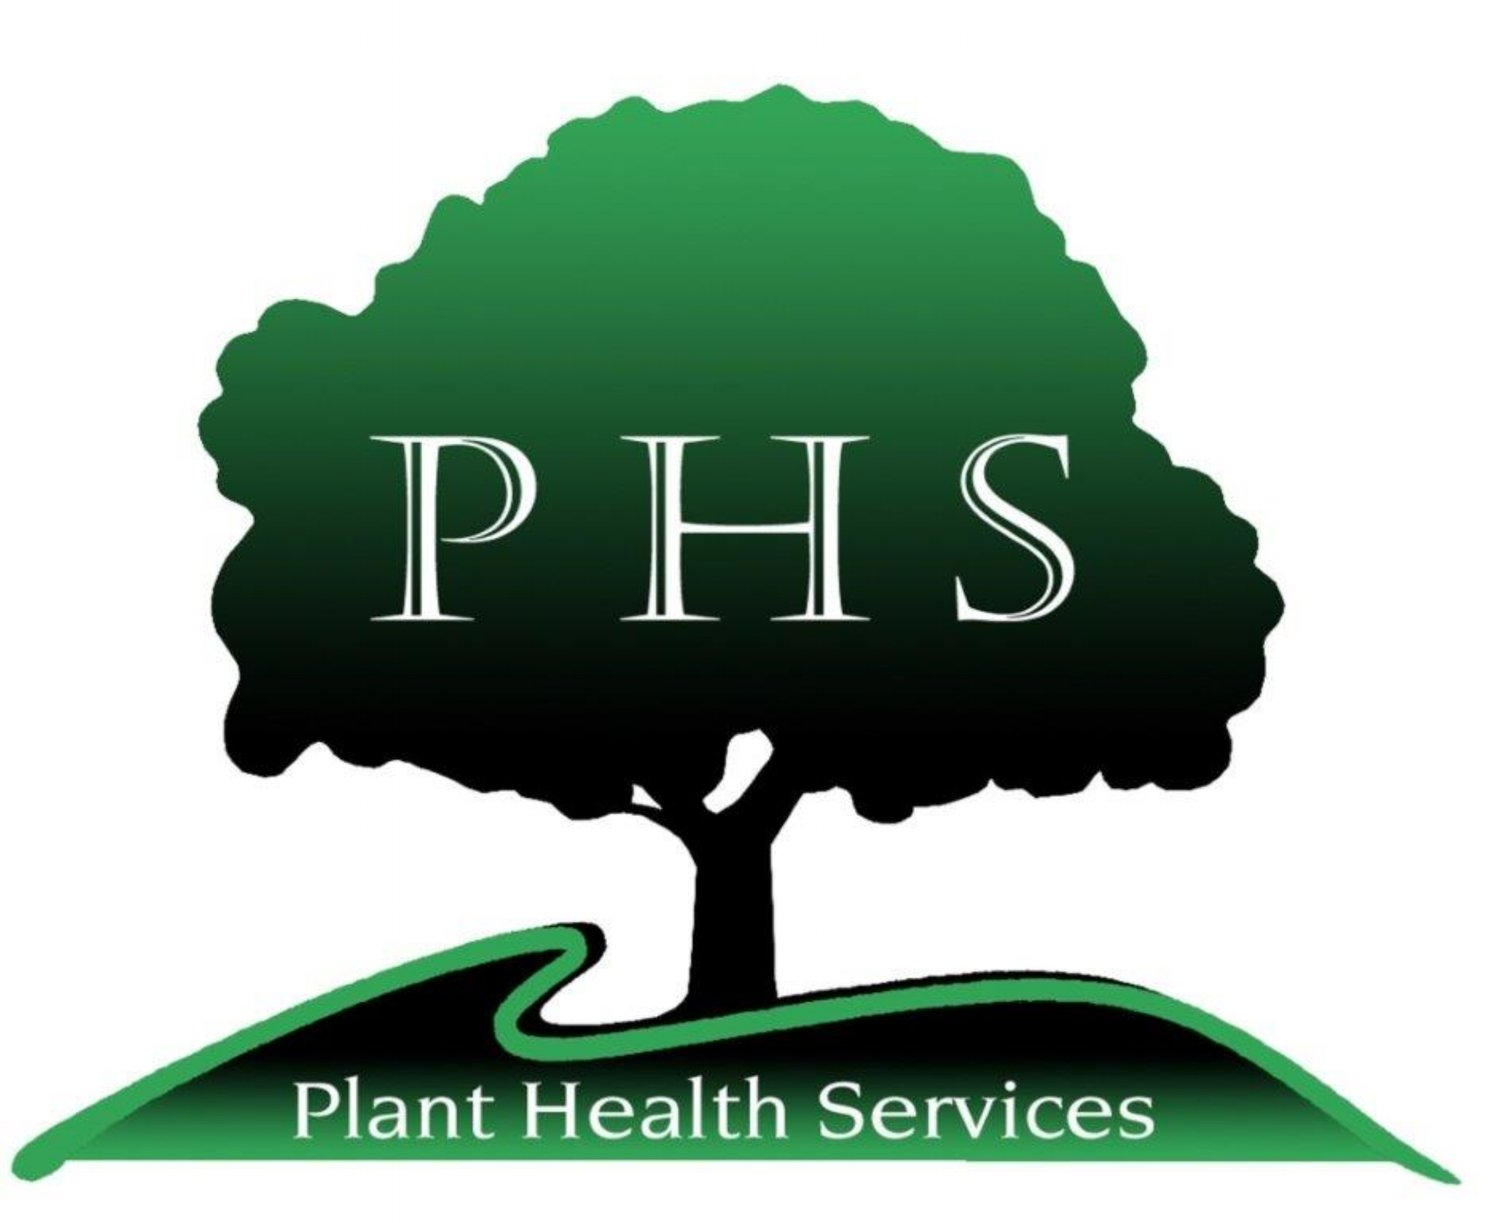 Plant Health Services